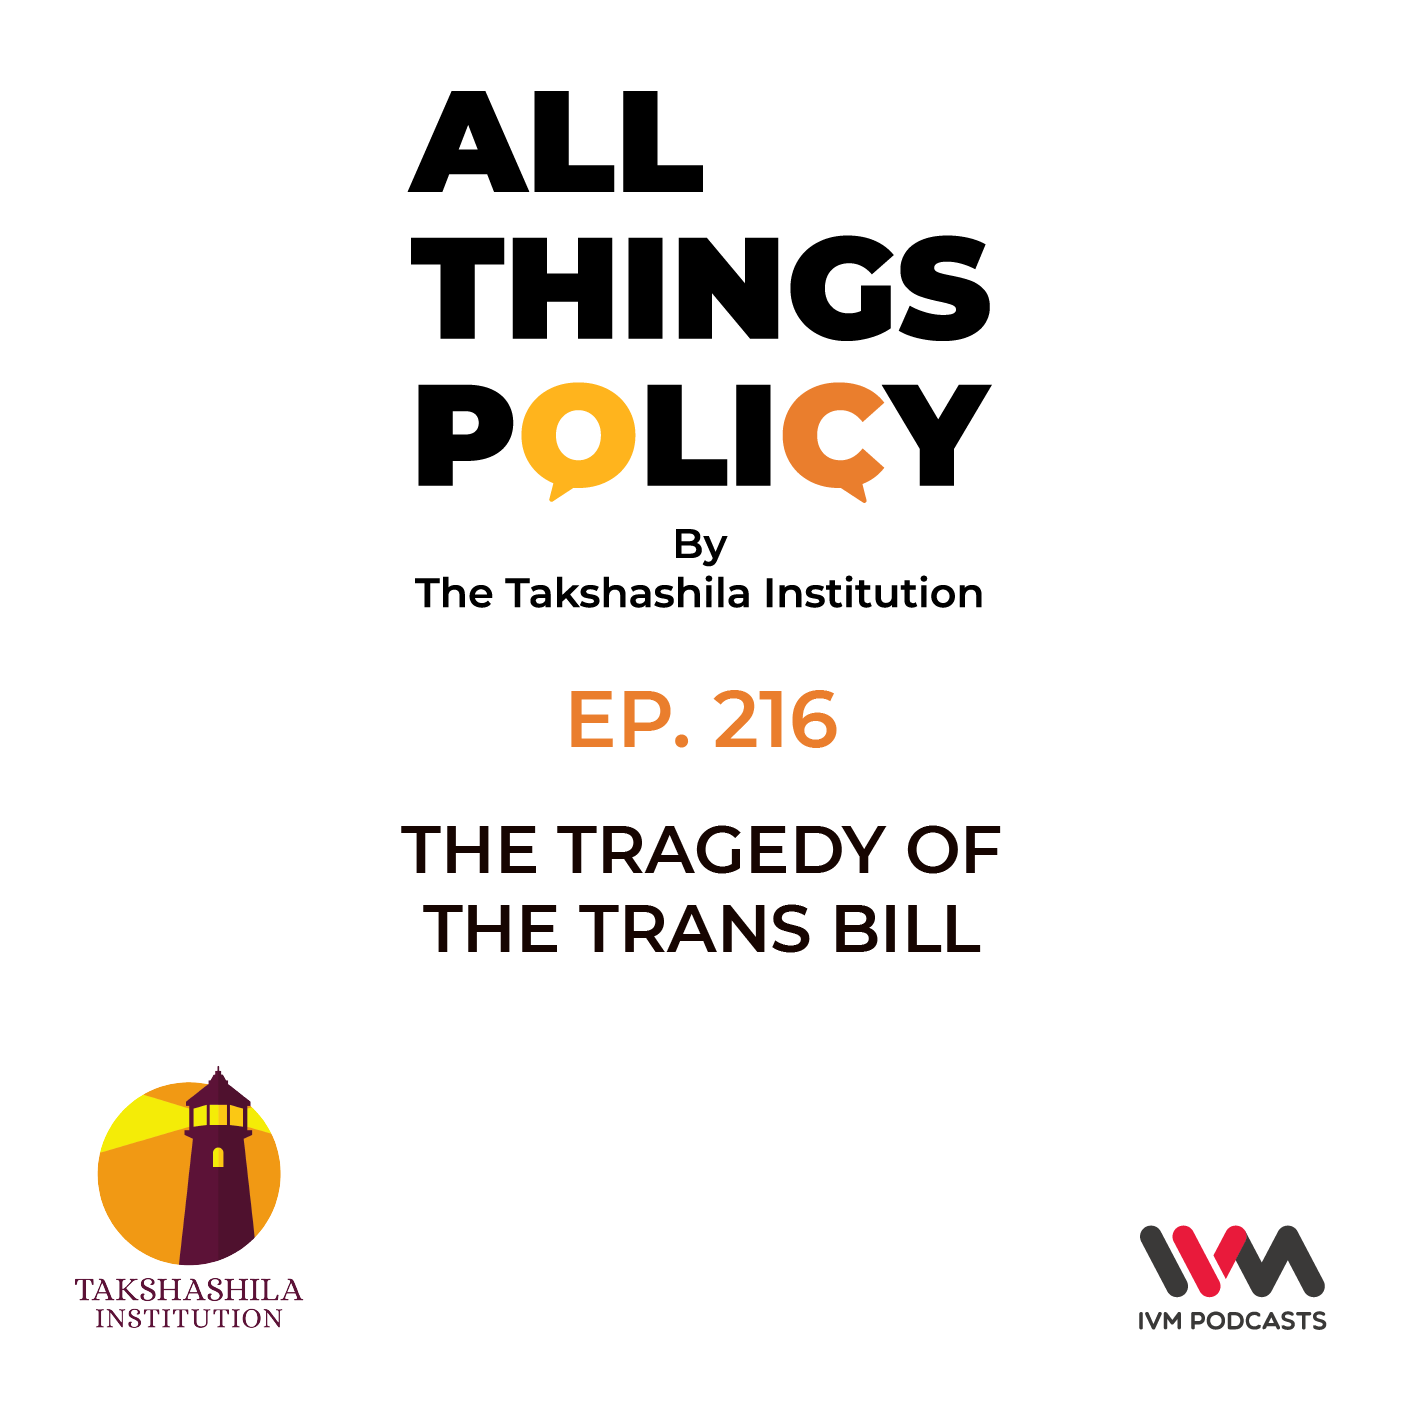 Ep. 216: The Tragedy of the Trans Bill